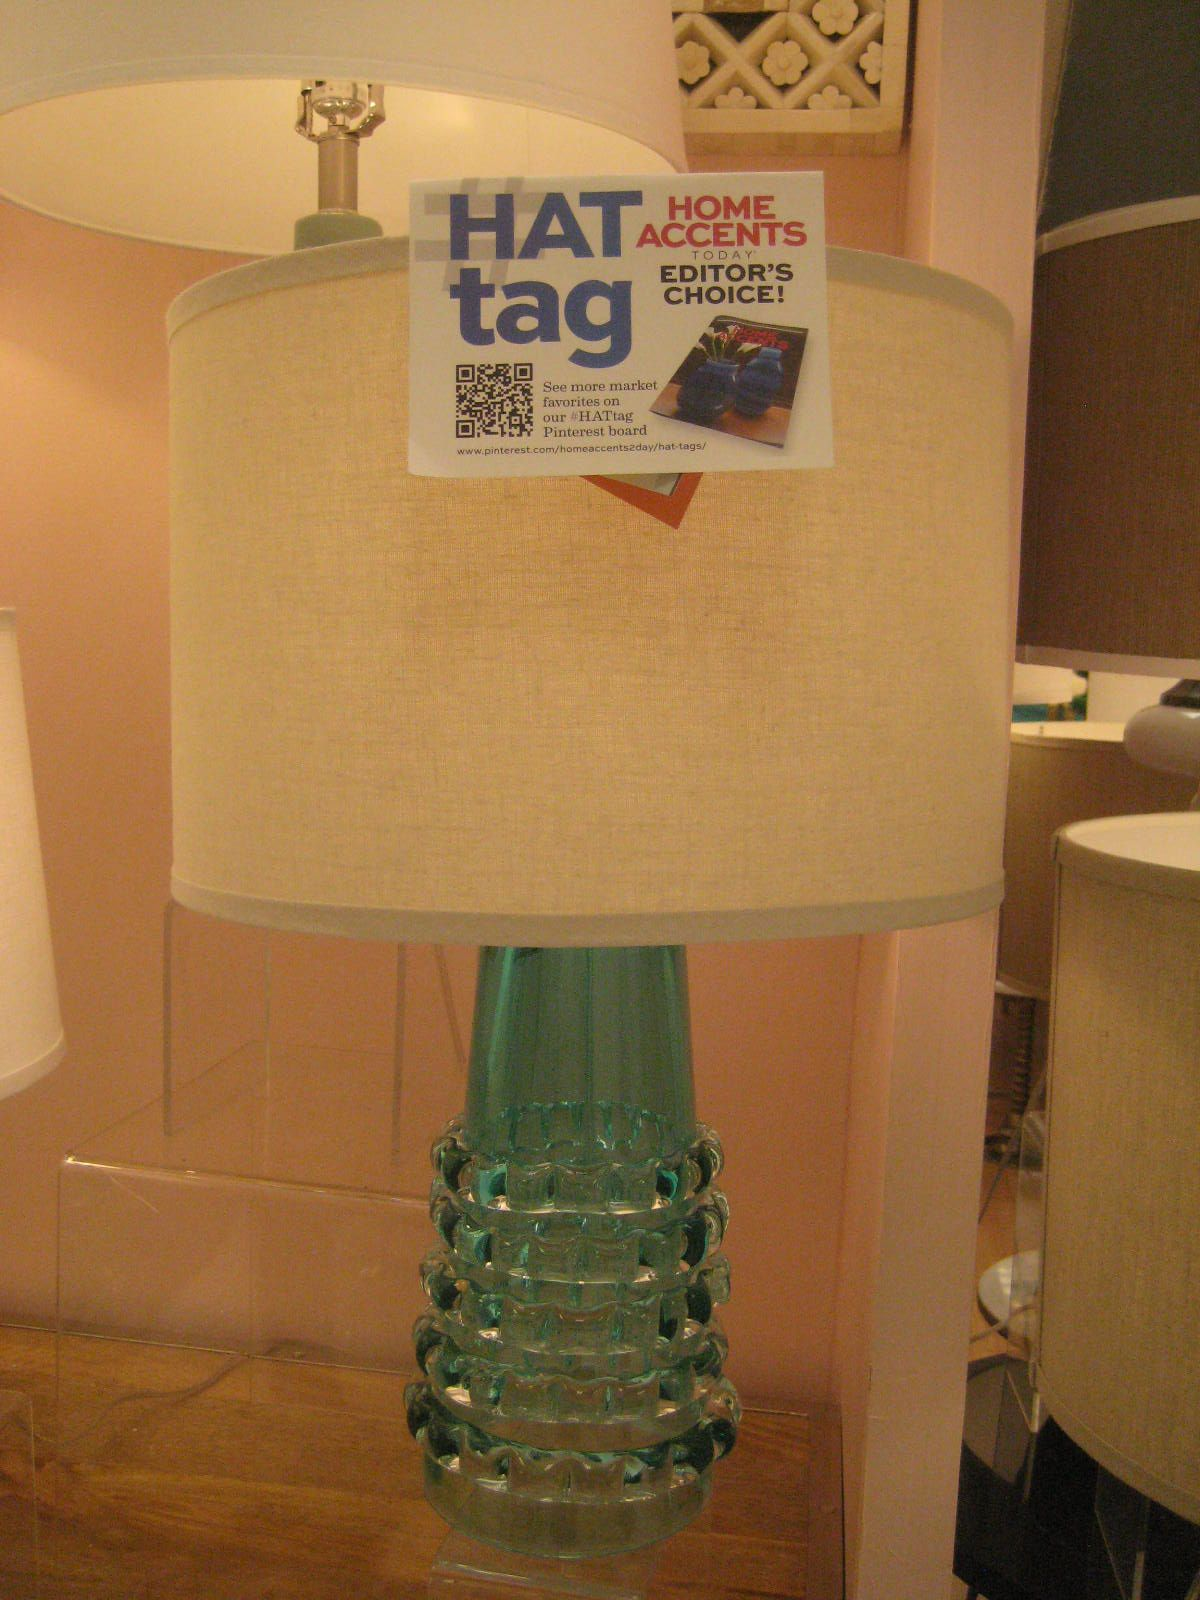 @jamieyoungco lamp #HATtag #atlmkt